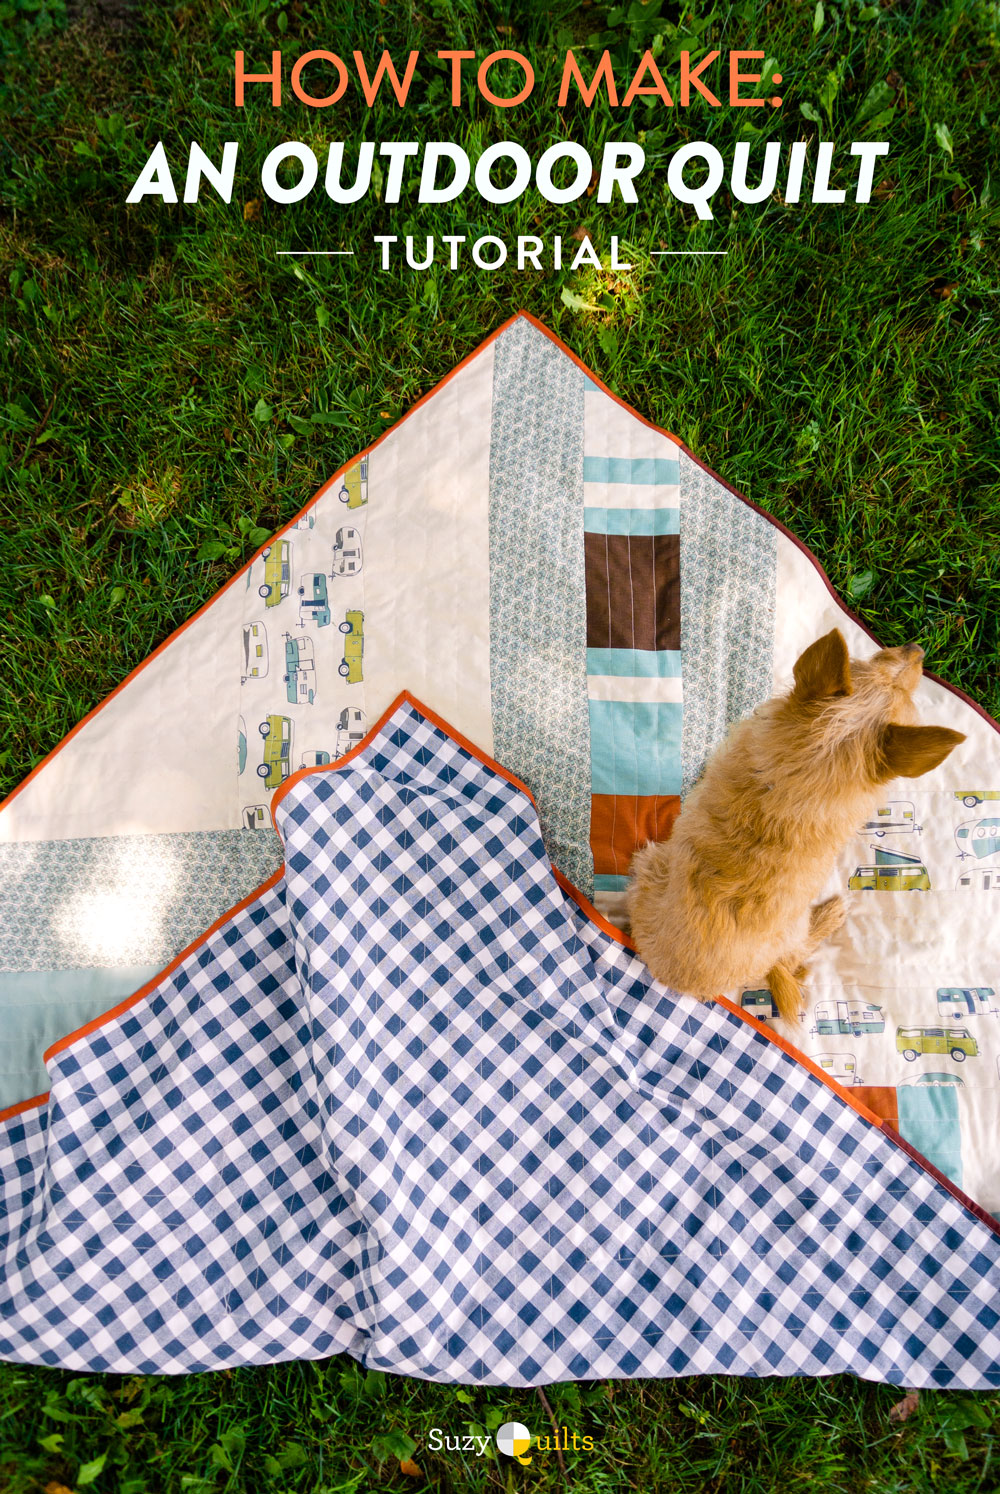 Make an outdoor quilt using canvas! Tips, tricks, gear, notions and all of the things you need to know to make a durable quilt perfect for the outdoors.